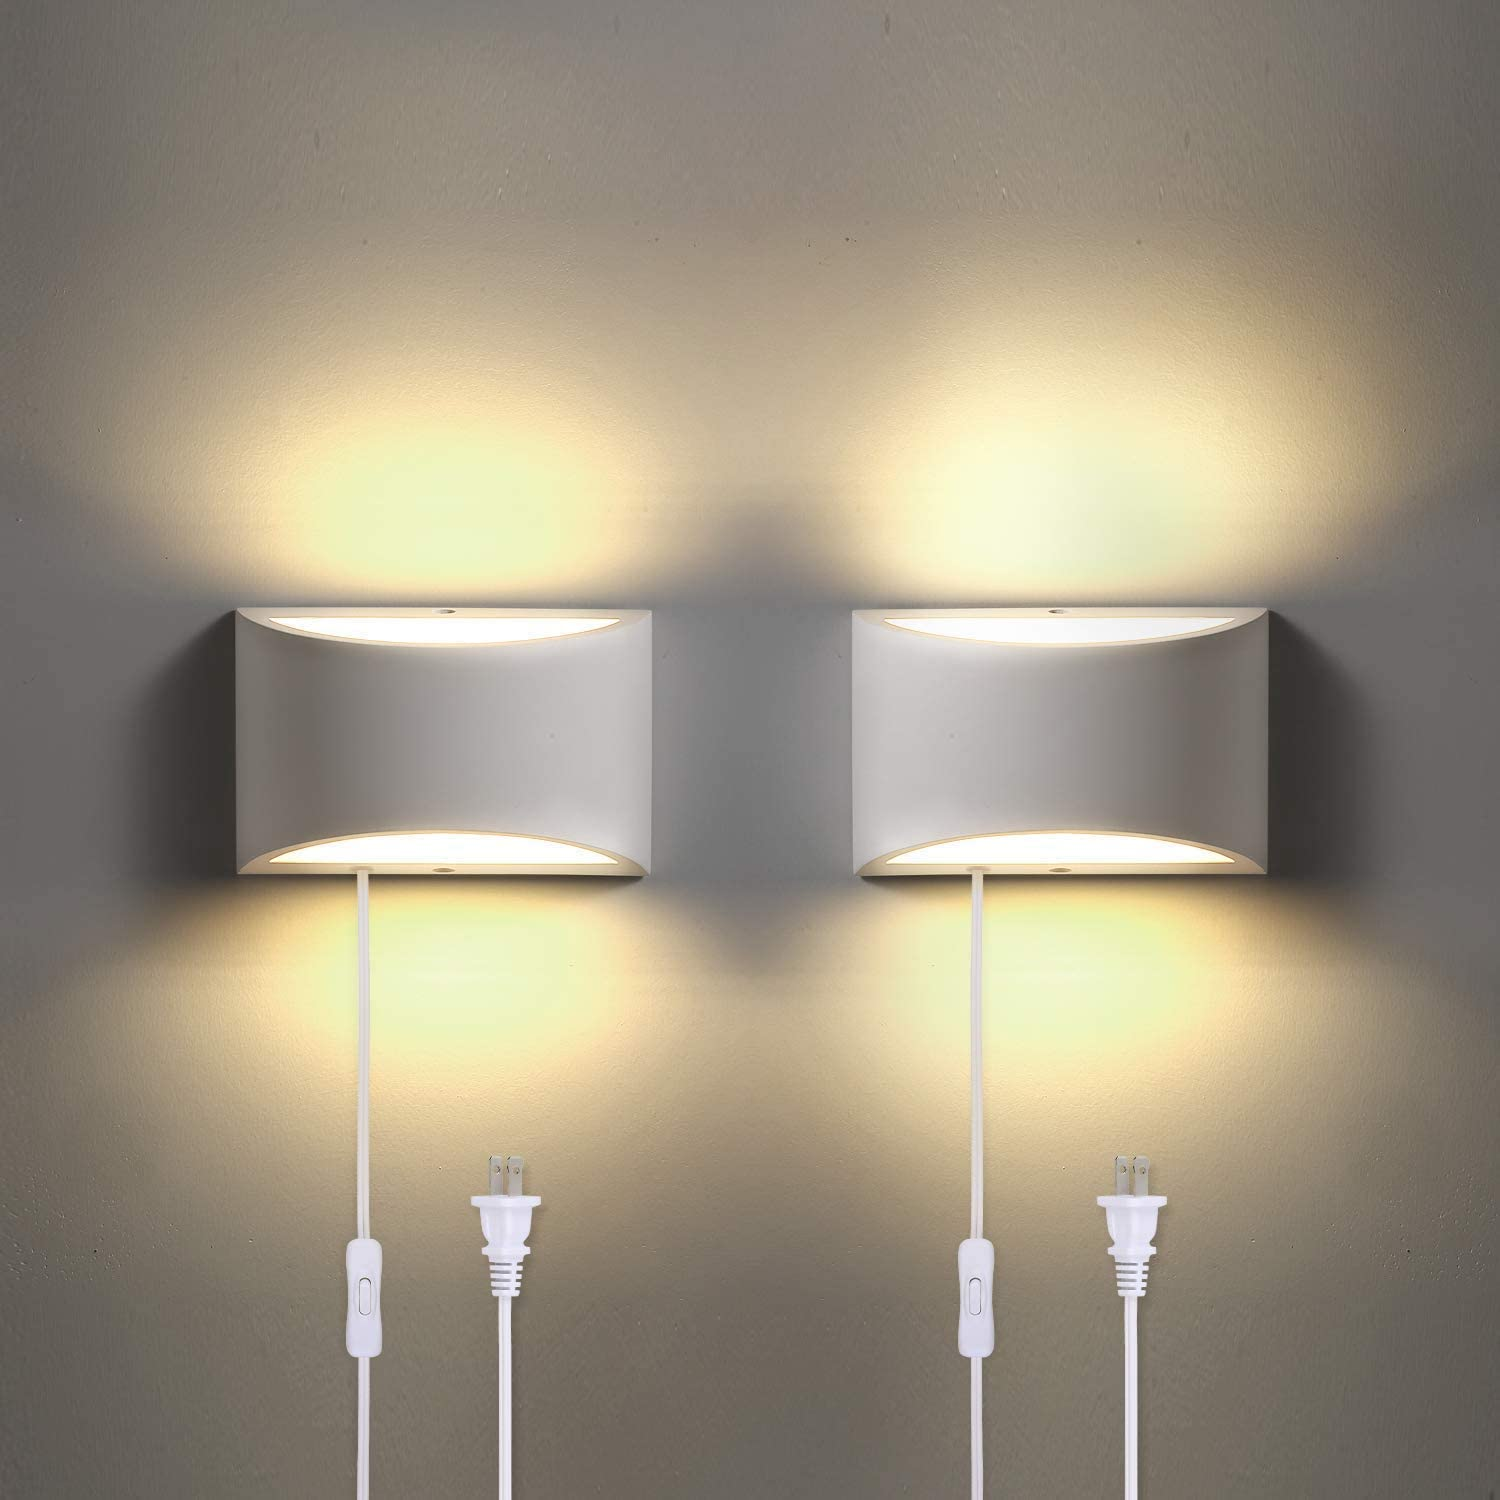 Trlife Wall Sconce Plug In Modern Wall Sconce 9w 3000k Warm White Wall Lights With Plug In Cord Wall Mounted Wall Sconce With 6ft Plug In Cord And On Off Switch On The